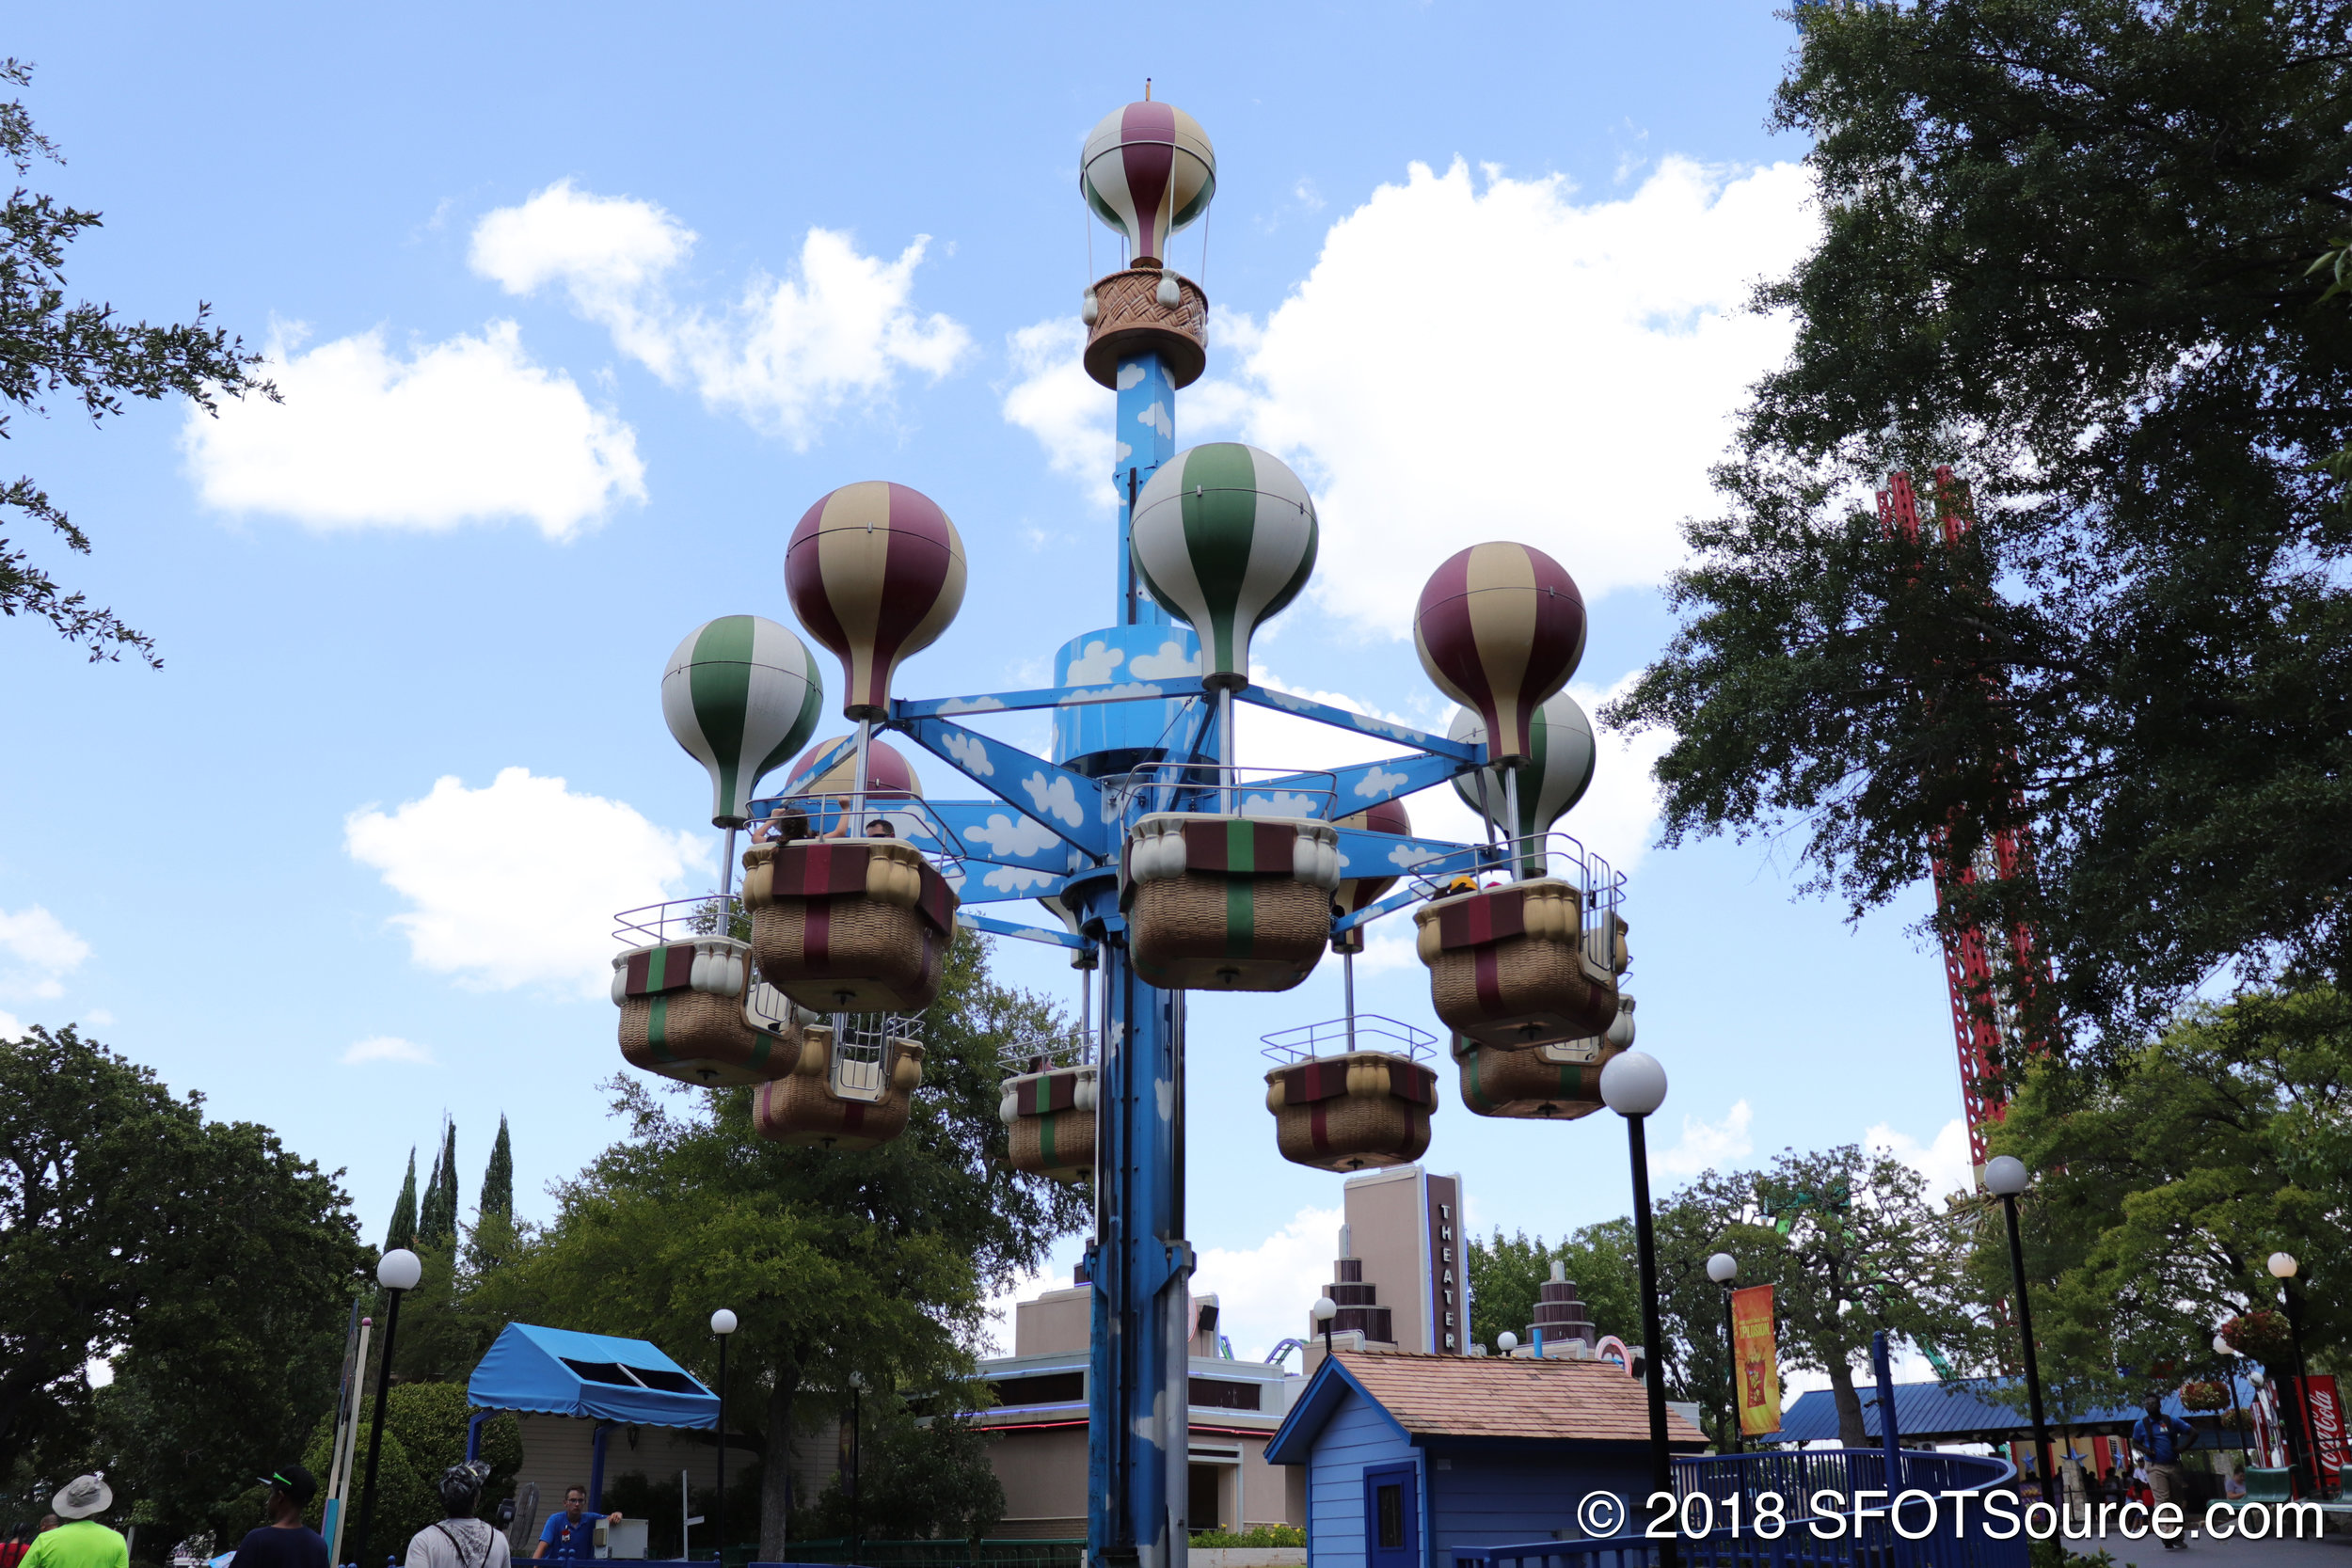 Cloud Bouncer is located near Majestic Theatre.